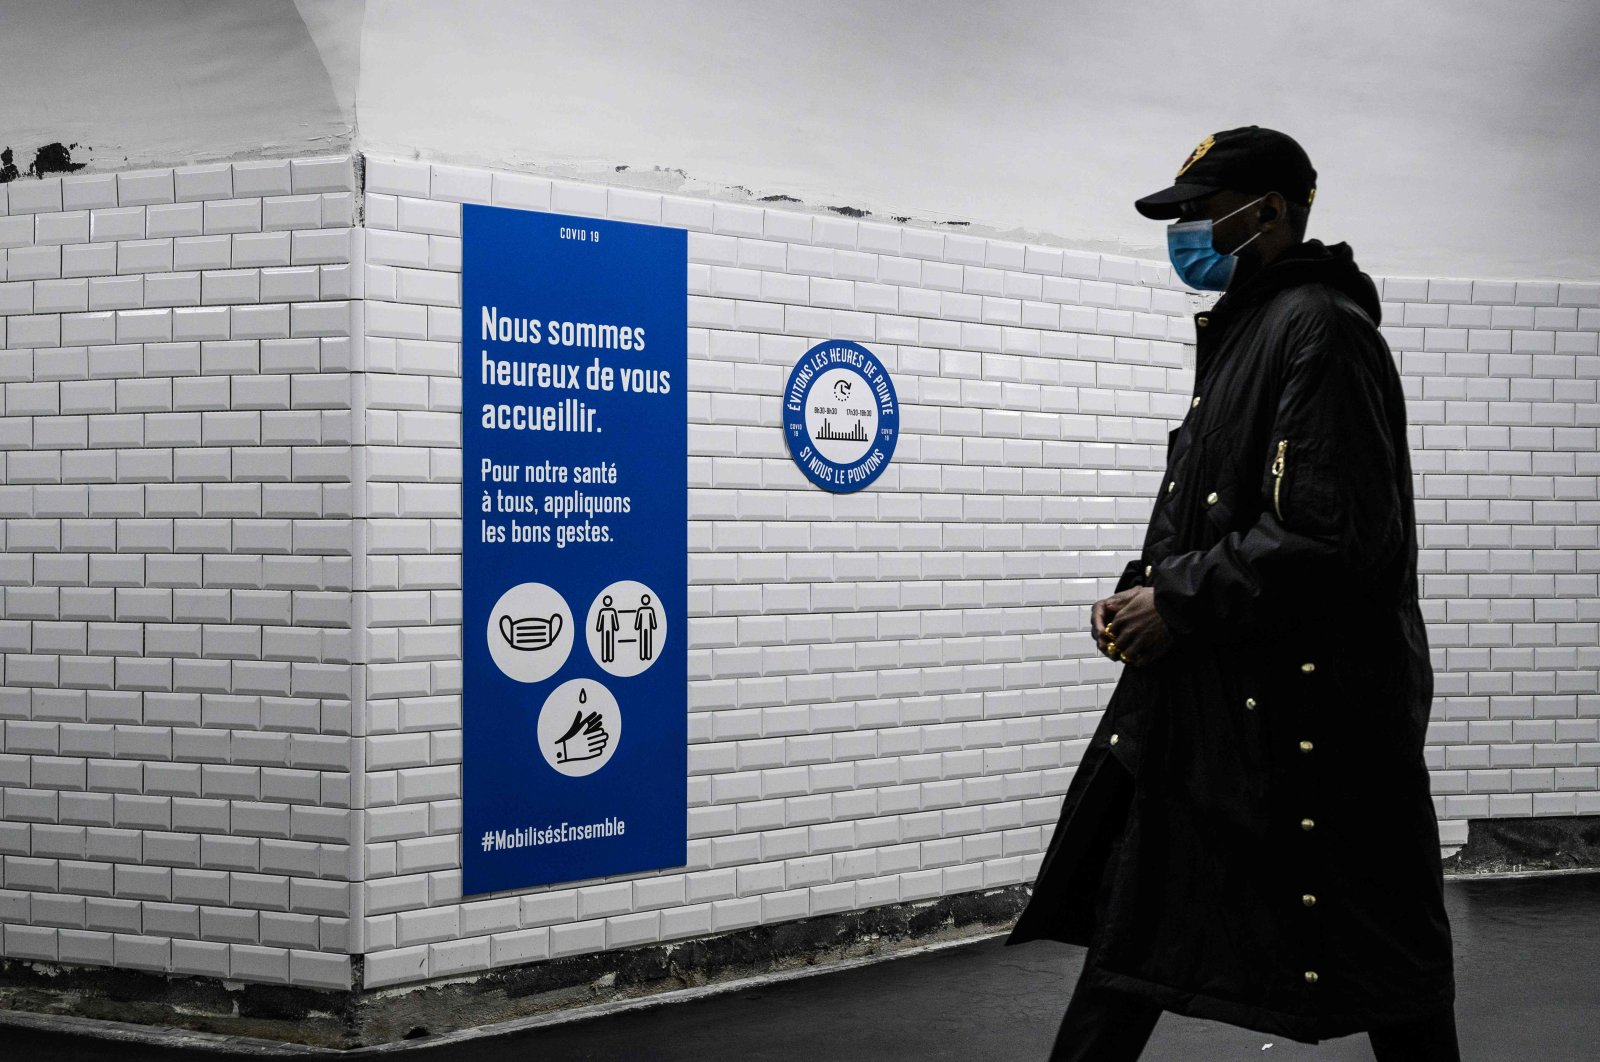 A commuter wearing a protective face mask walks past safety guideline signs in a metro station in Paris, France, May 14, 2020. (AFP Photo)